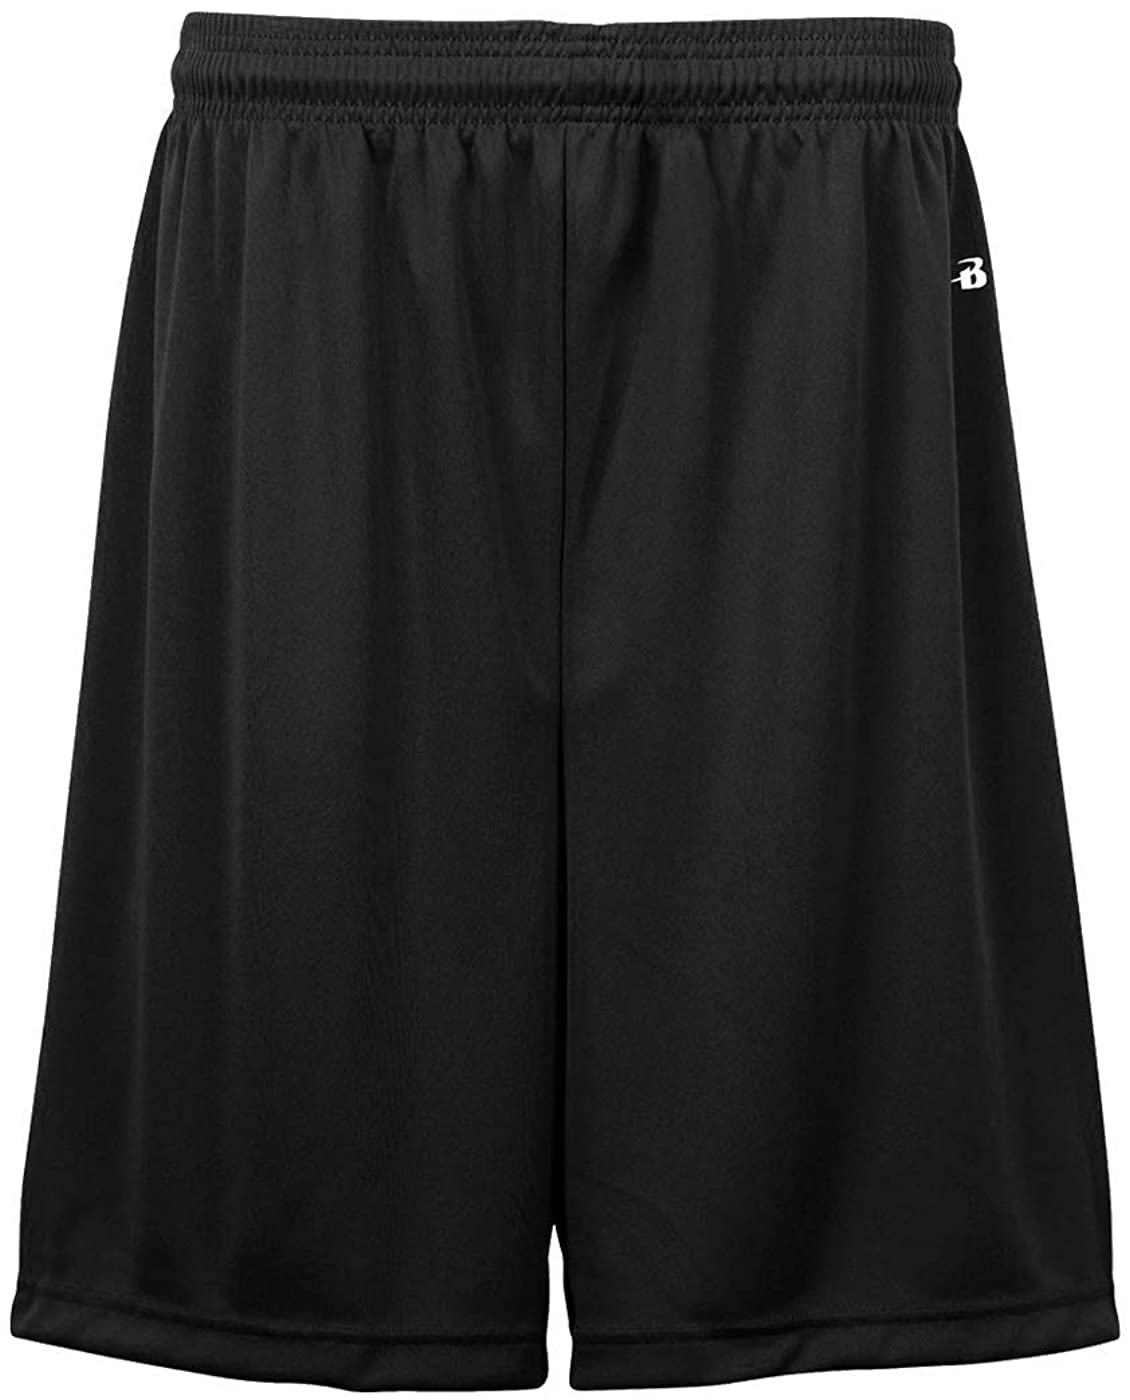 Black Youth Large (Blank) All Sports Shorts